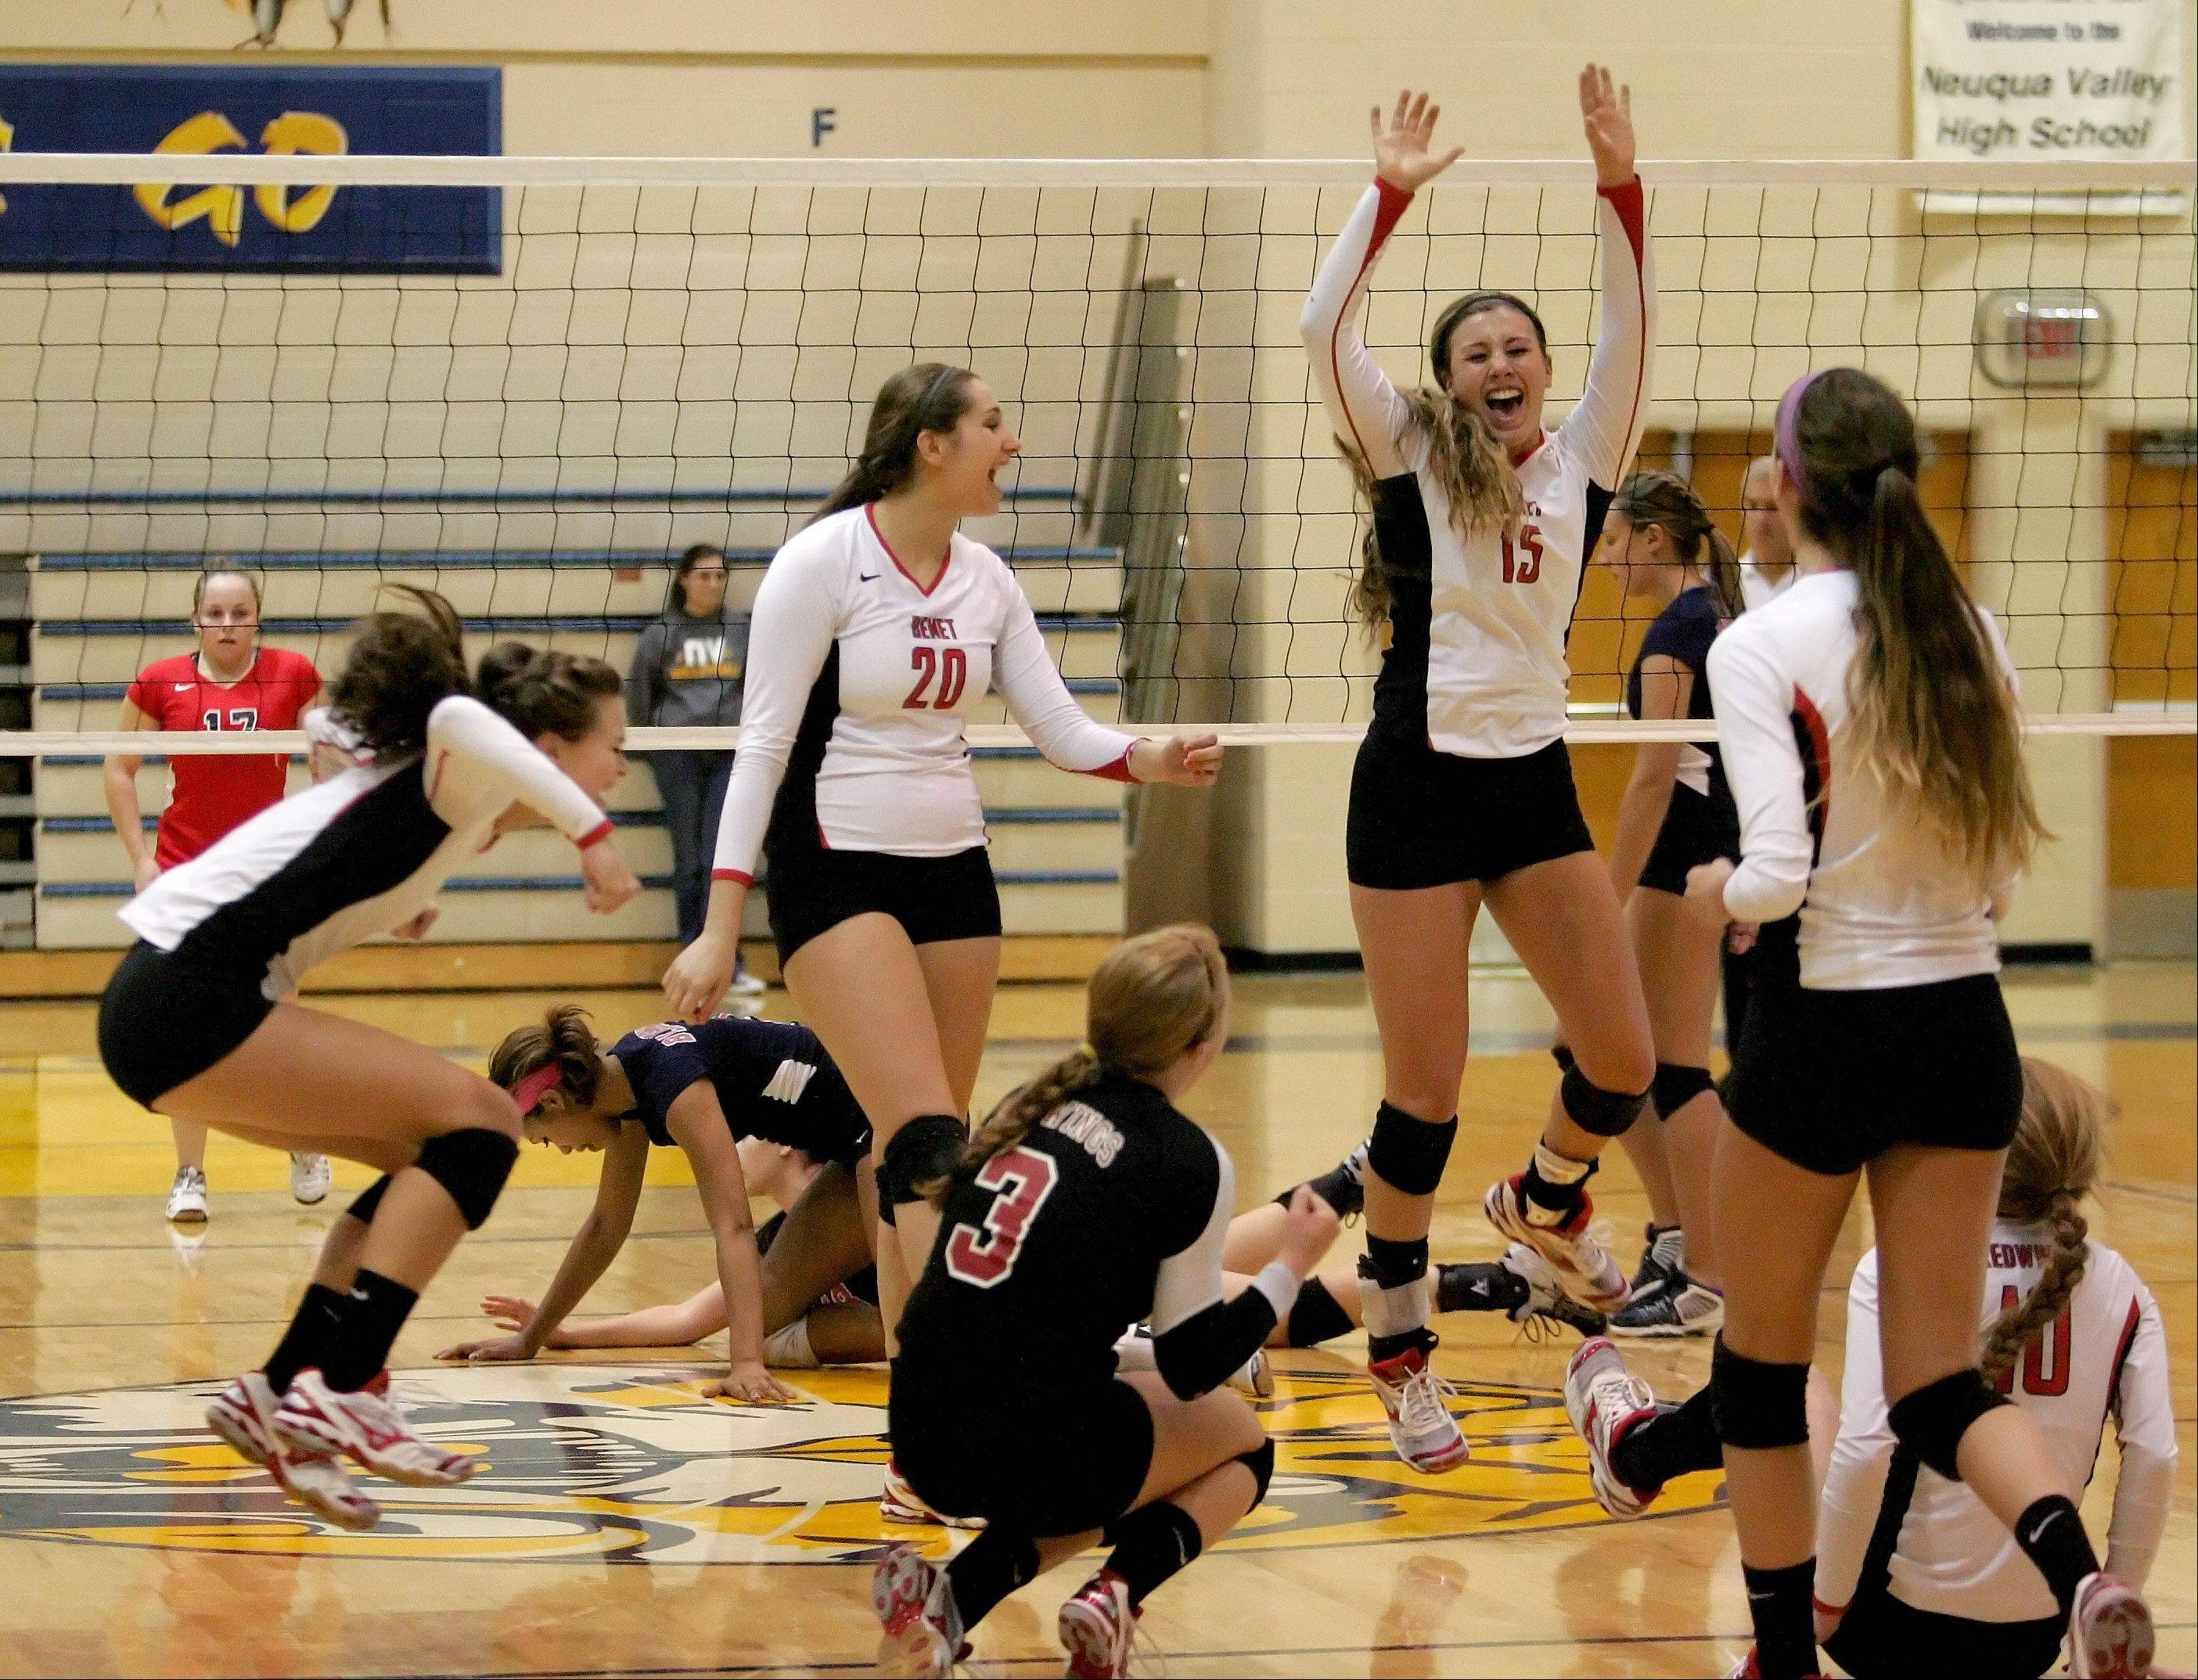 Benet reacts to their win over West Aurora in Tuesday's volleyball sectional semifinals in Naperville.